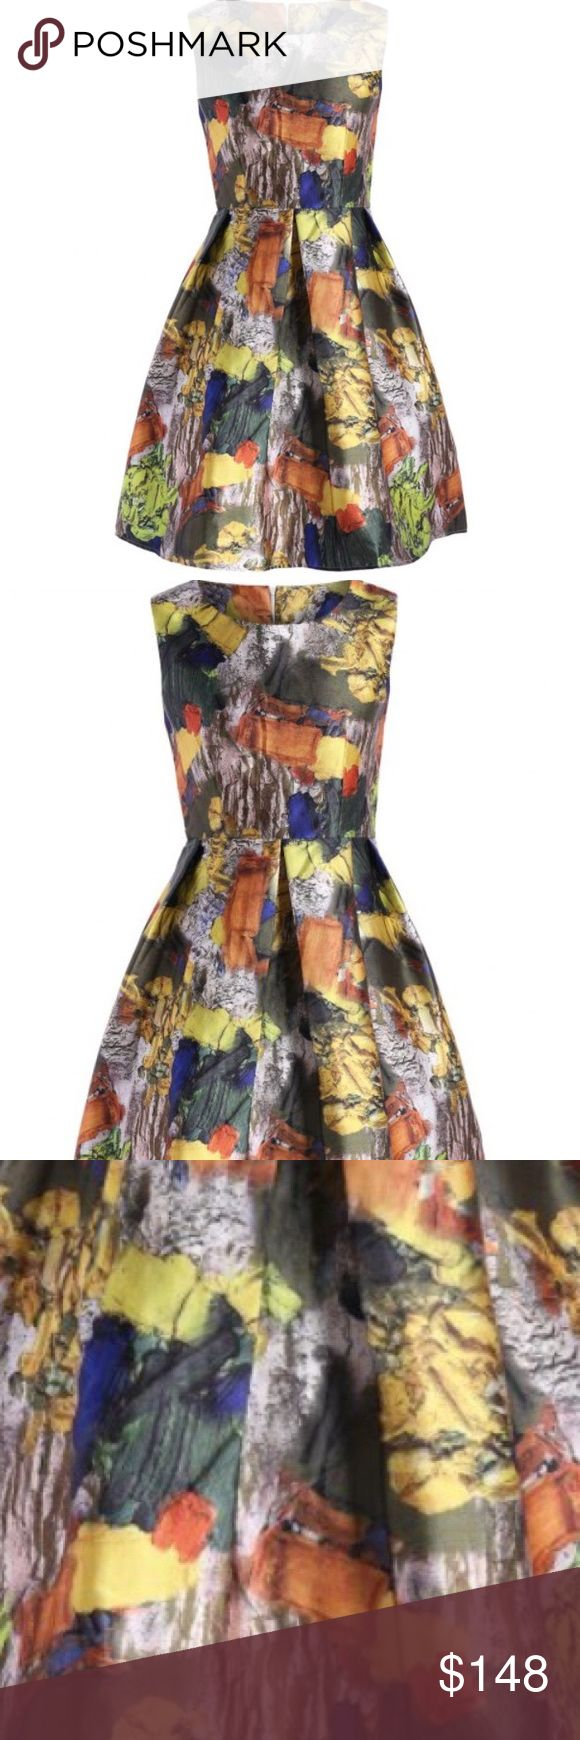 🔥 Weekend SALE! 🔥 Abstract A-Lined Dress Beautiful A-Lined Sleeveless Multi-colored Dress. Dresses Midi